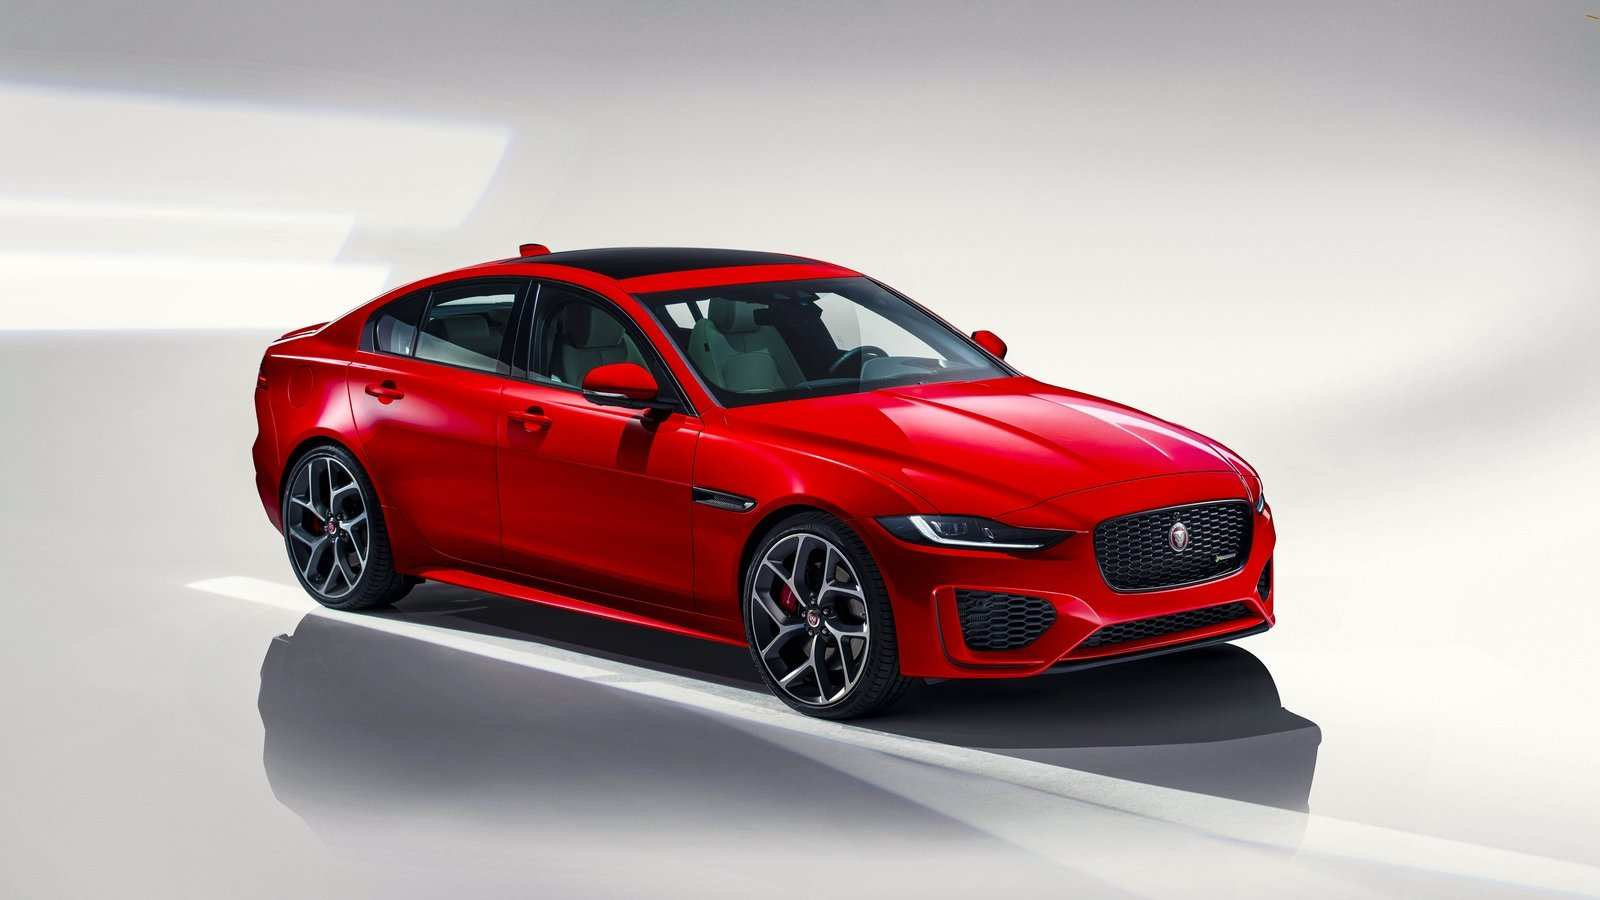 62 Great 2020 Jaguar Xe Build Engine by 2020 Jaguar Xe Build